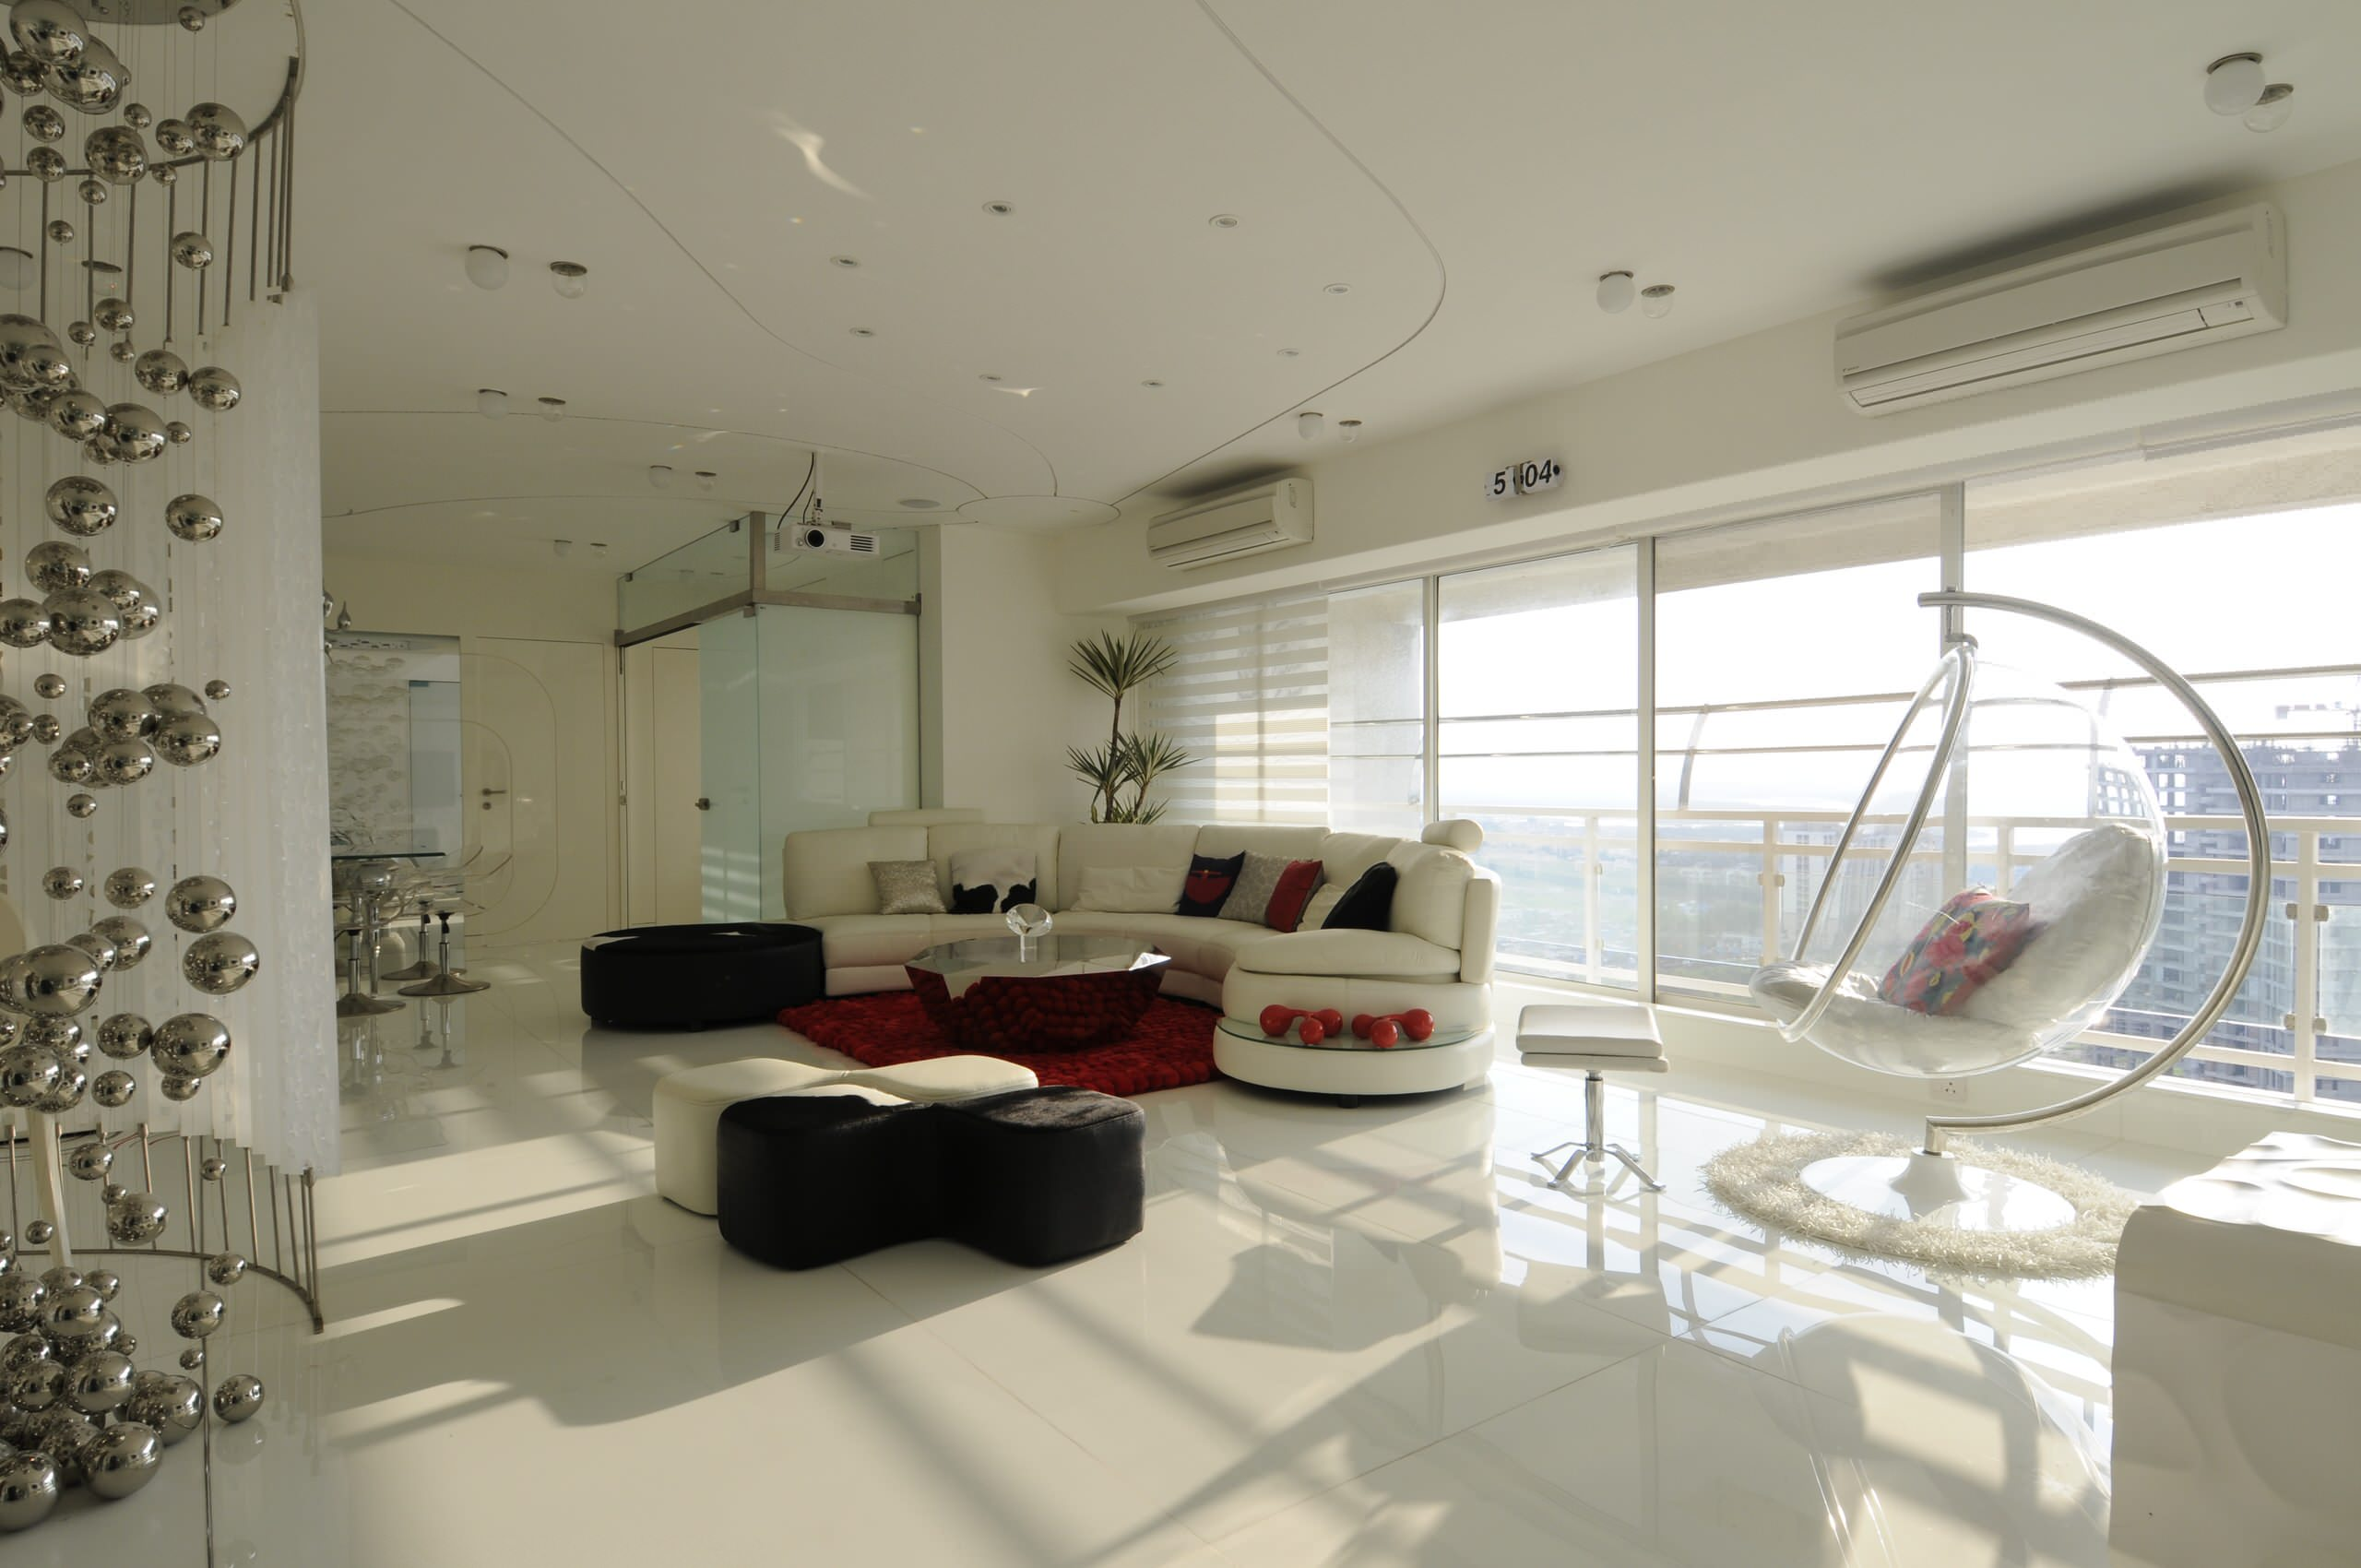 75 Beautiful Modern Marble Floor Living Room Pictures Ideas December 2020 Houzz